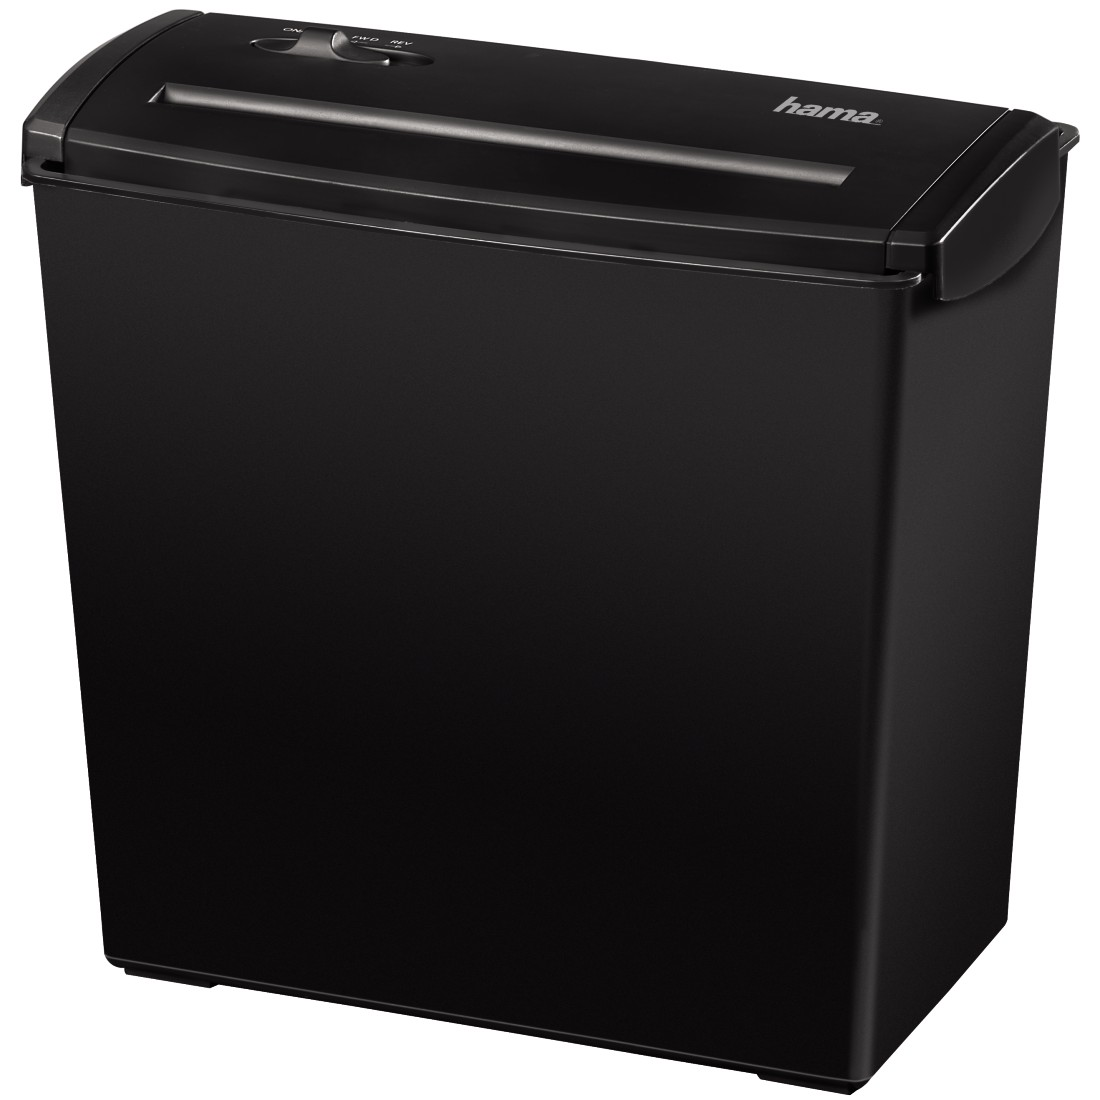 abx3 High-Res Image 3 - Hama, Home S7 Shredder